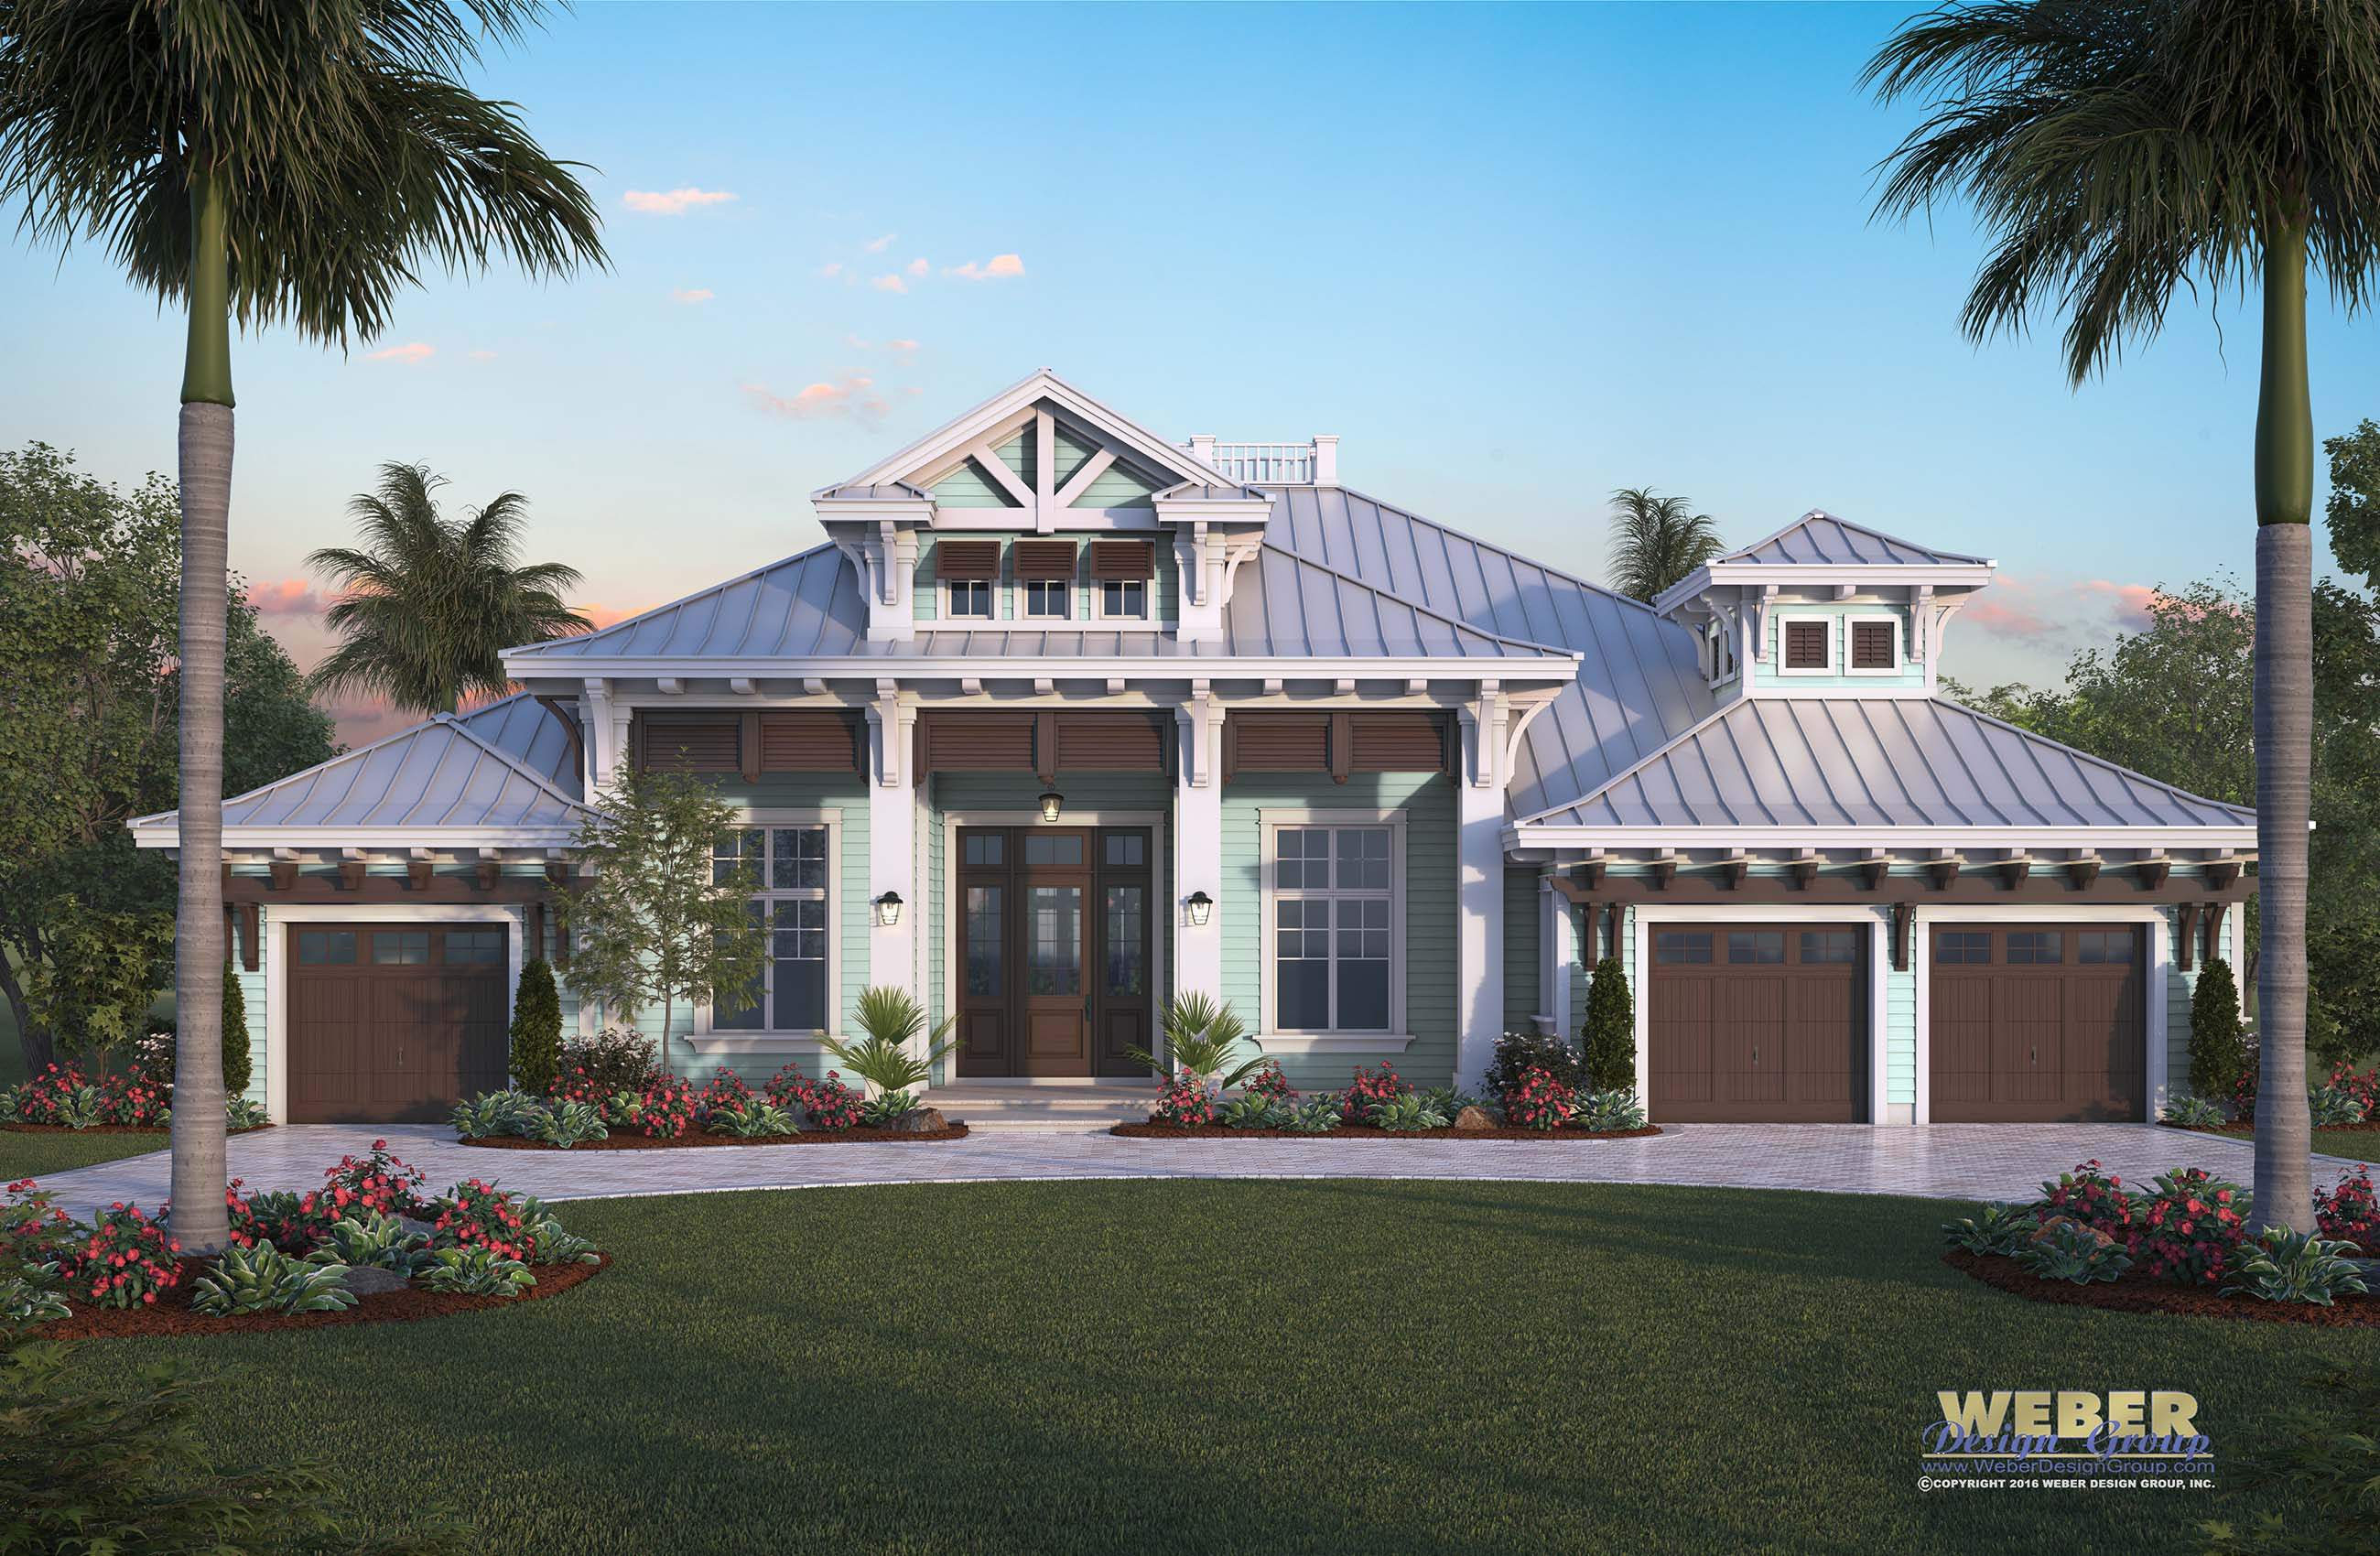 Harbor house plan luxury caribbean beach home outdoor for Weber house plans